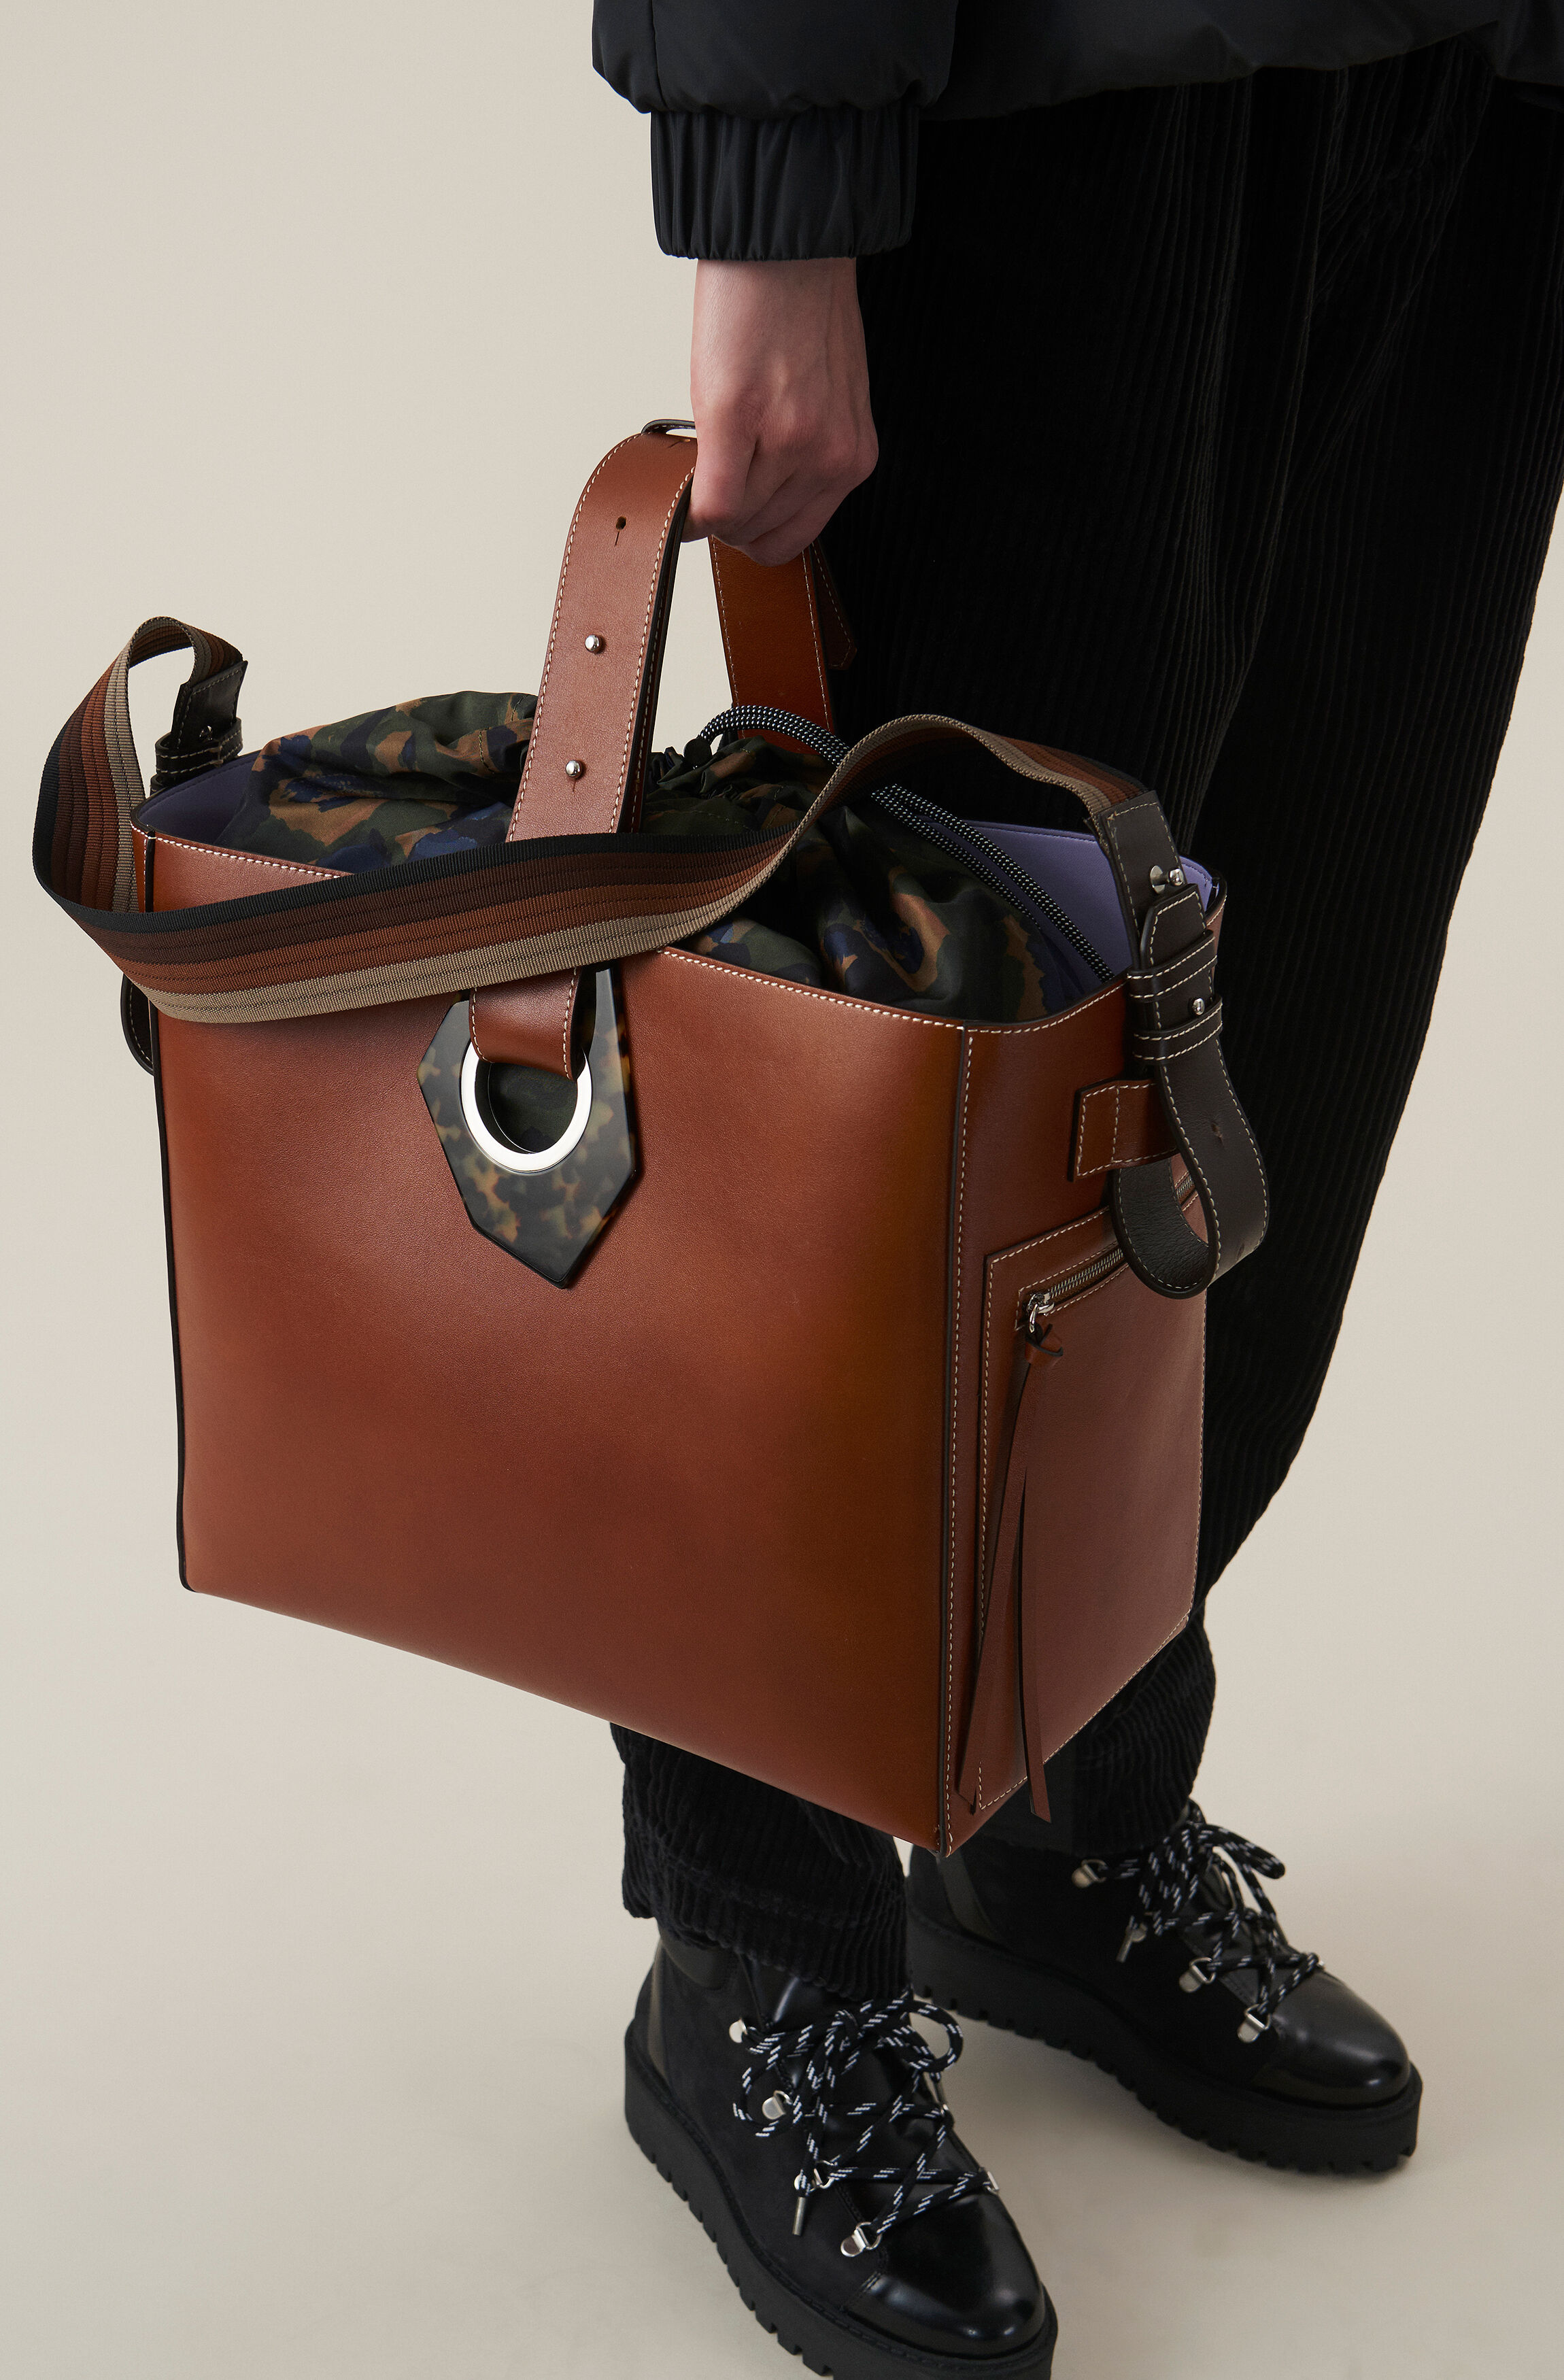 00 EurShop Bag669 Your New Ganni Leather Tote 6Ygyv7bf